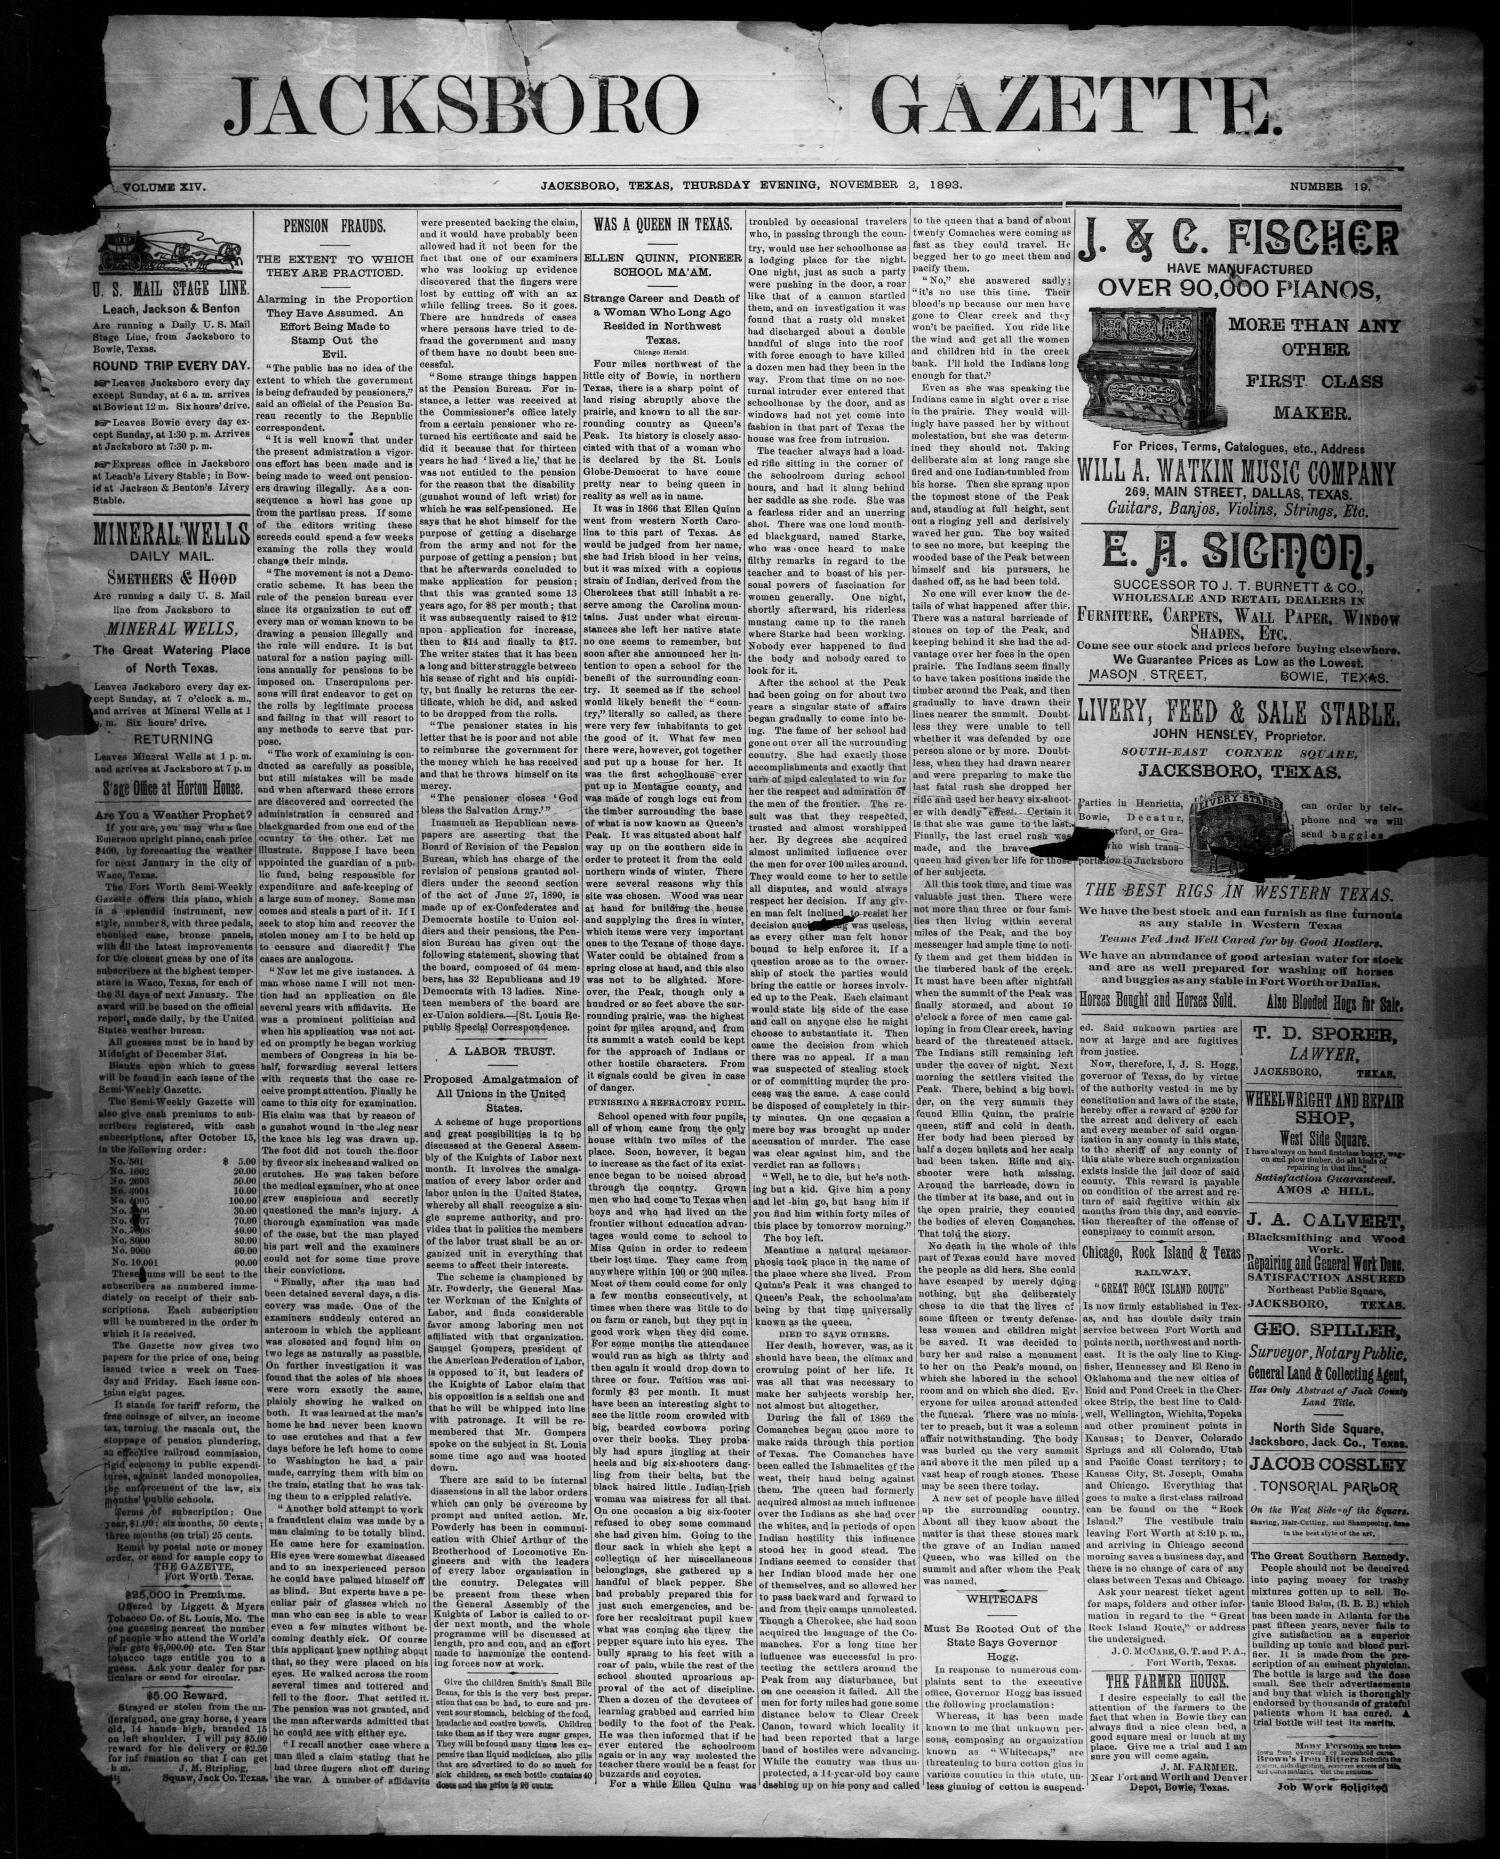 Jacksboro Gazette. (Jacksboro, Tex.), Vol. 14, No. 19, Ed. 1 Thursday, November 2, 1893                                                                                                      [Sequence #]: 1 of 4